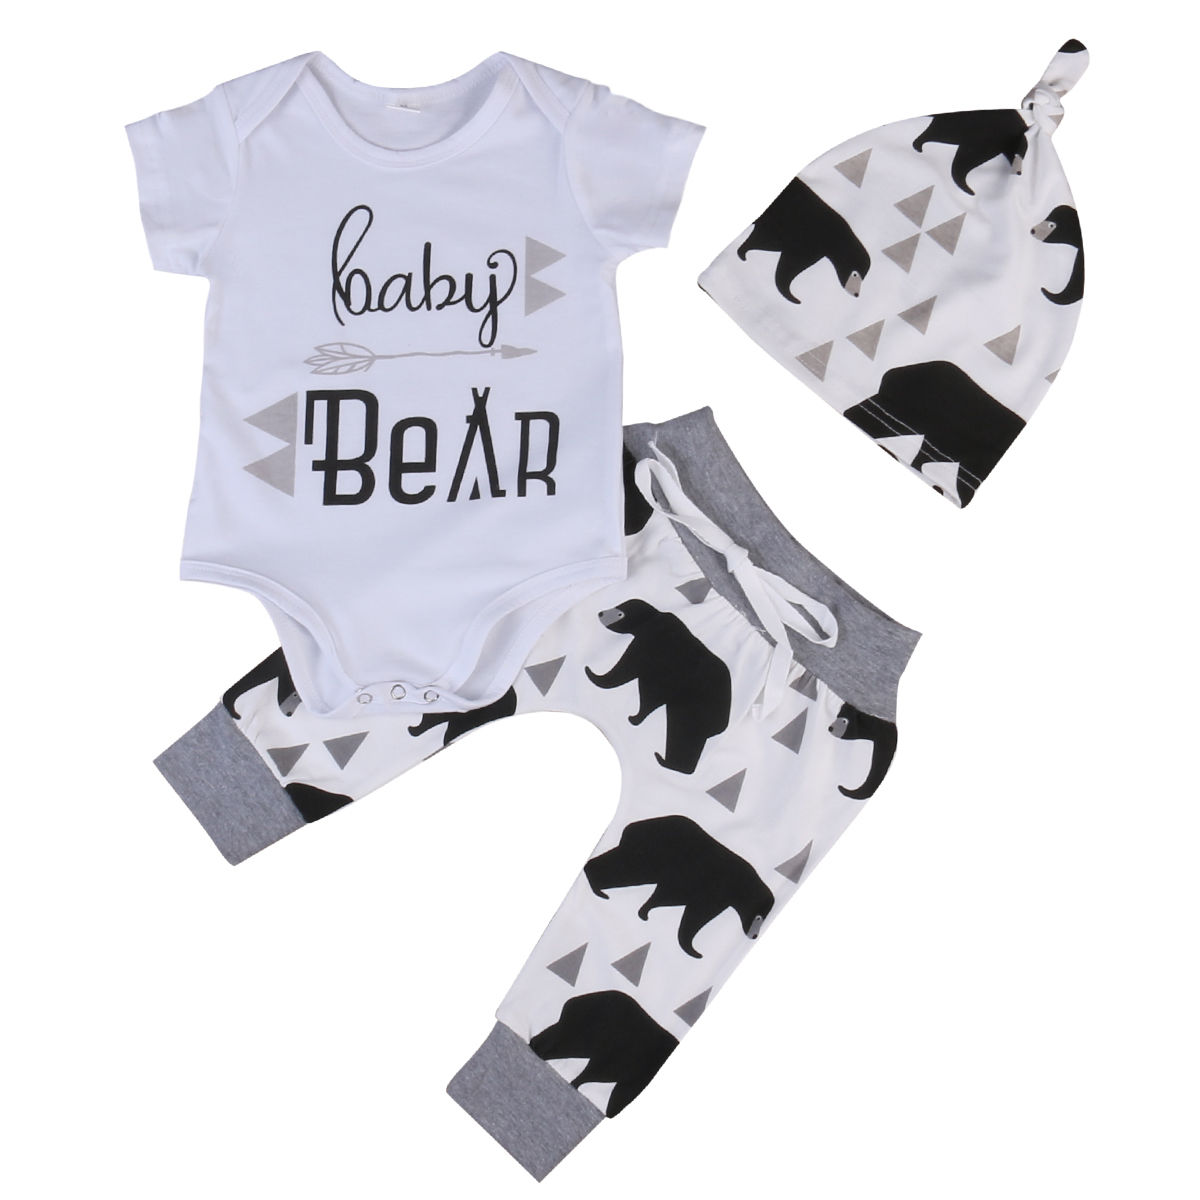 Newborn Baby Boys Girls Clothes Summer Kids girl Clothing Romper Short sleeve T-shirt Tops Long Pants Outfits Sets